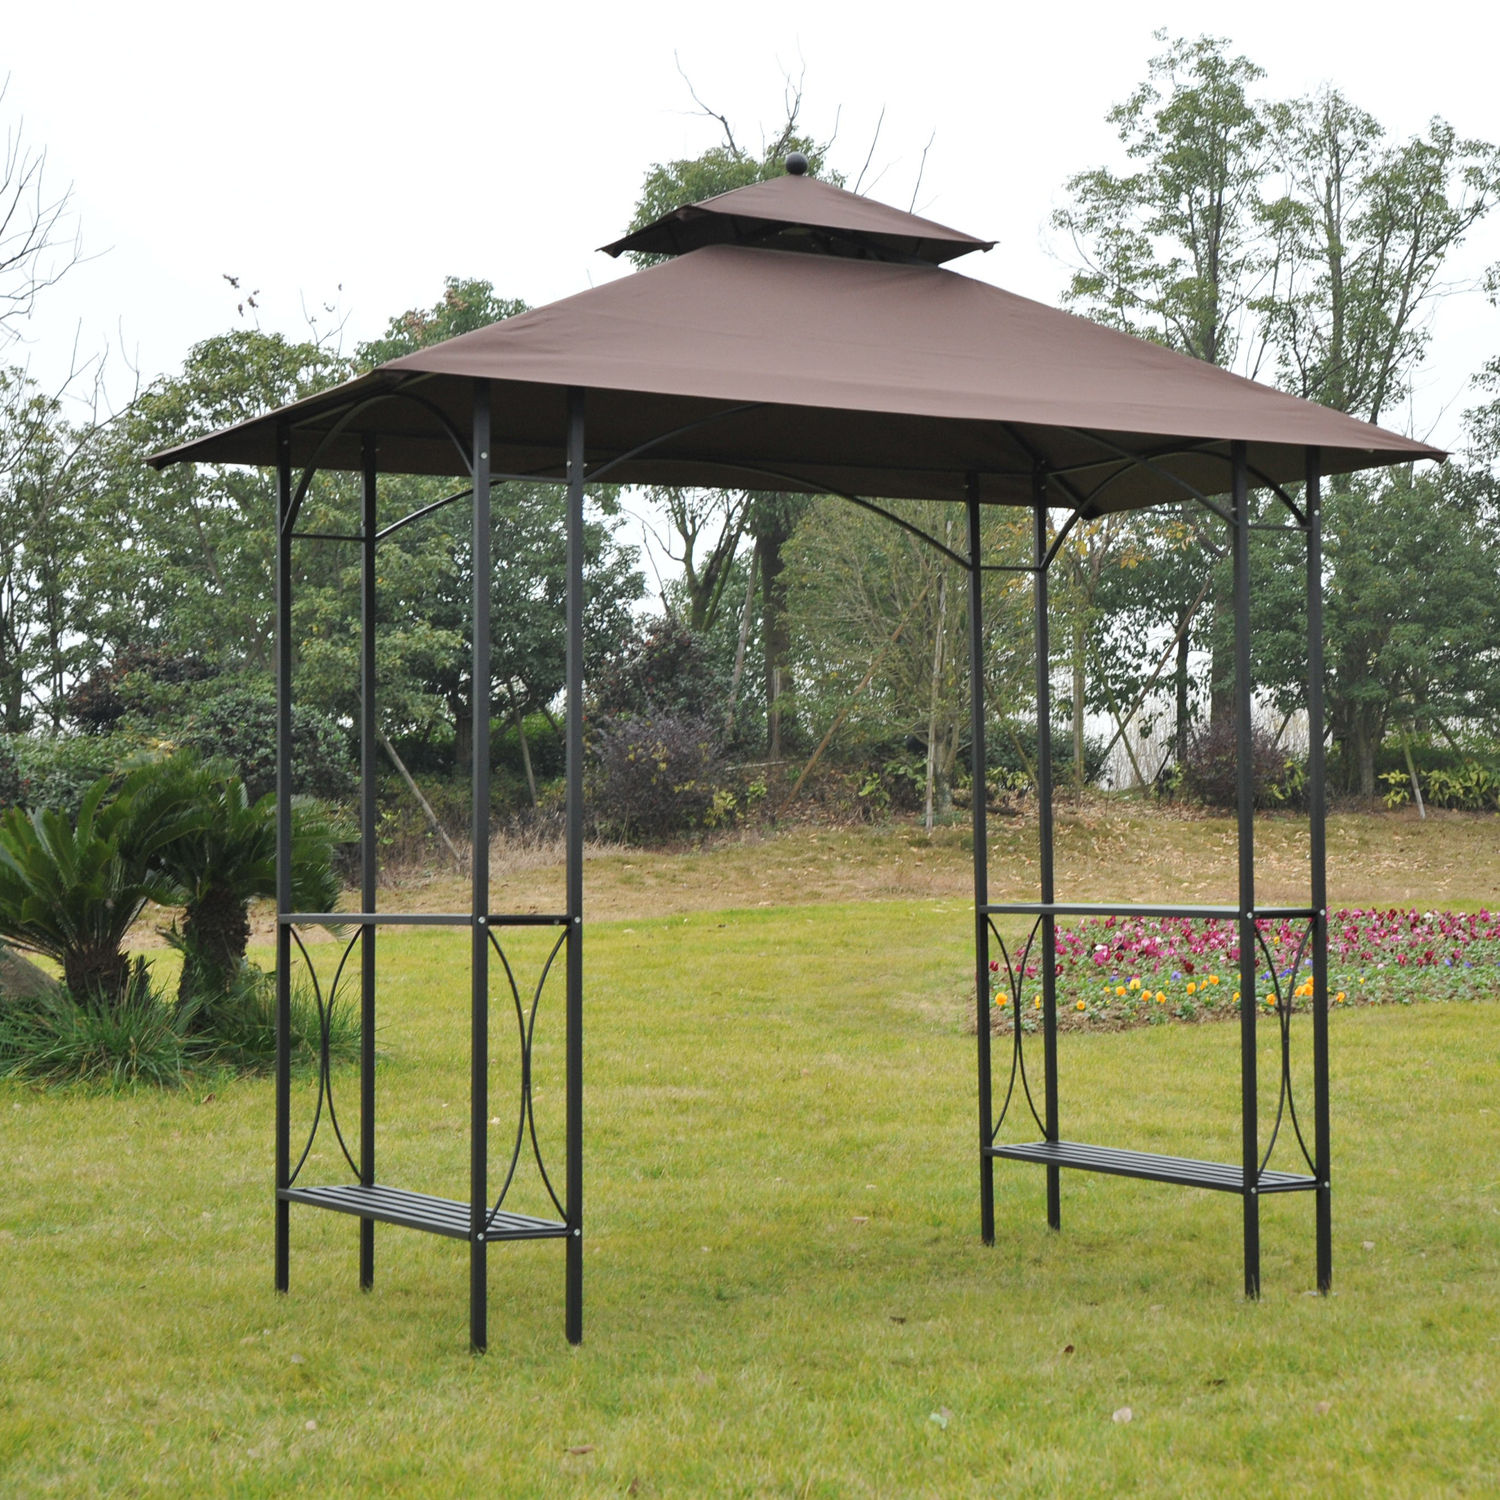 outdoor ideas pinterest grill about gazebo best canopy awning french bbq creative on